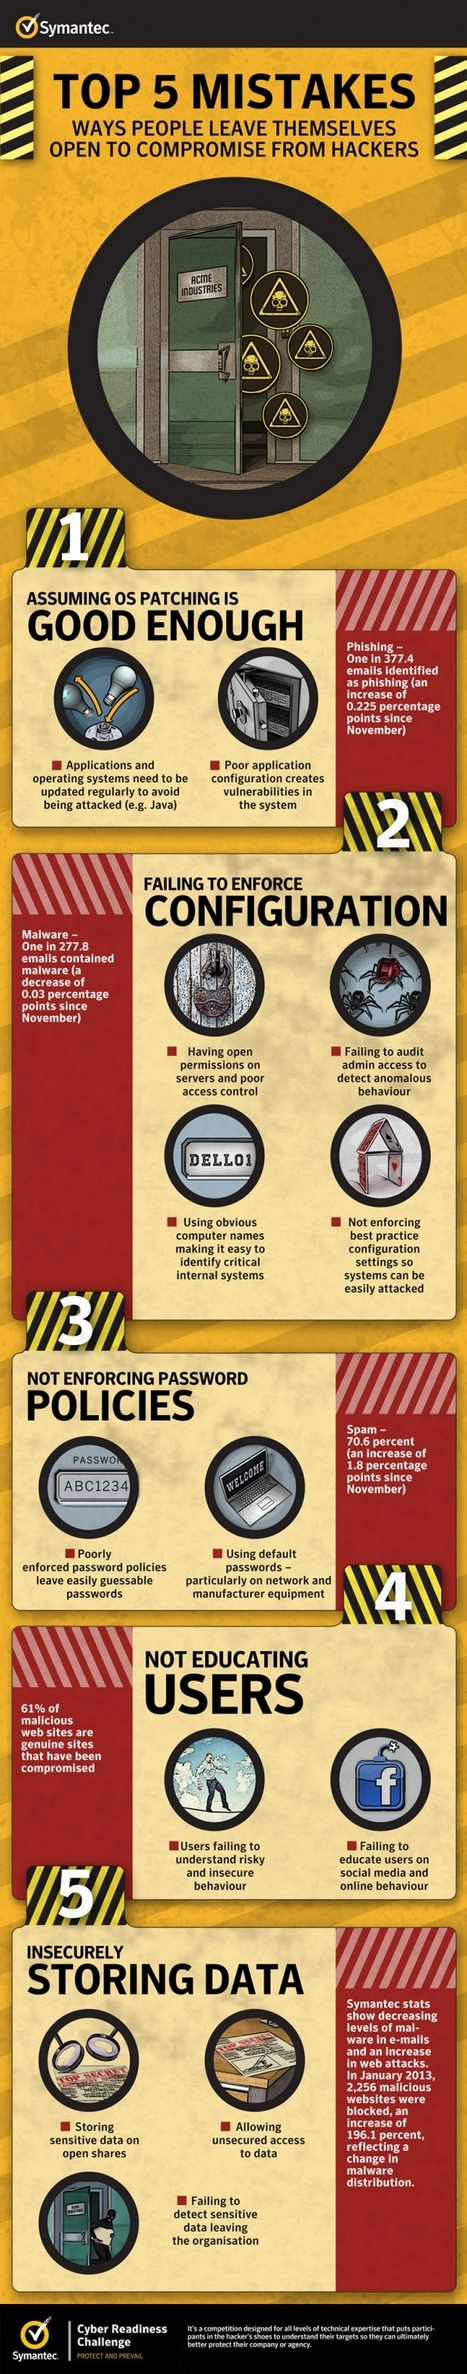 Top 5 Mistakes Ways People Leave Themselves Open to Compromise From Hackers [Infographic] | ciberpocket | Scoop.it